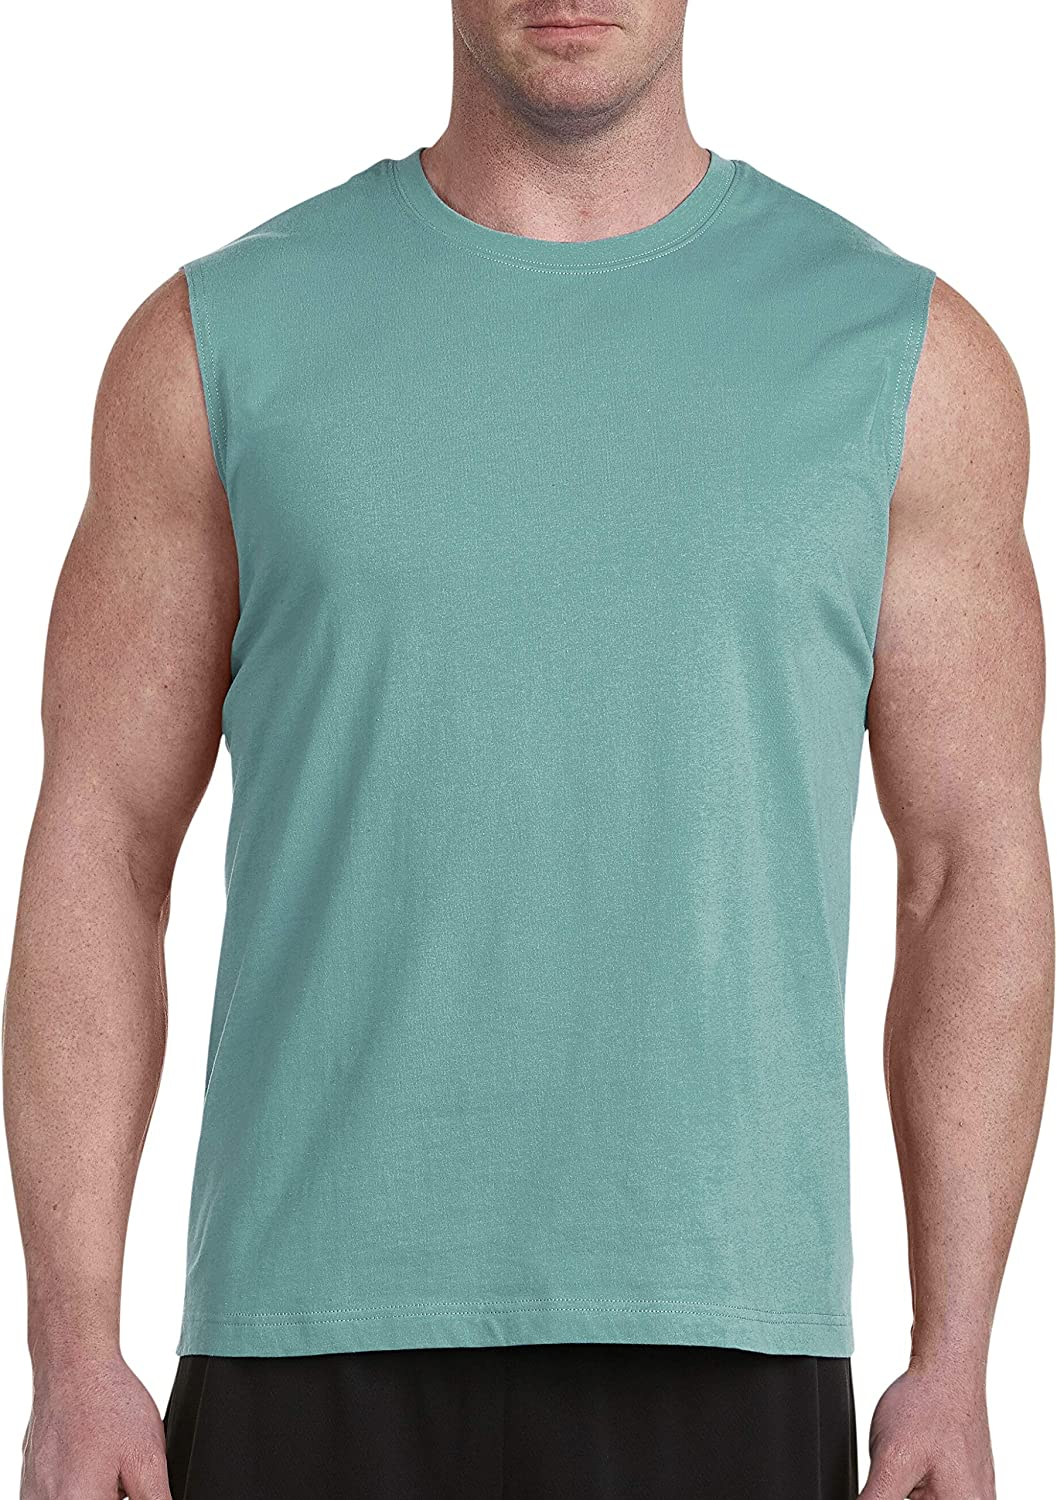 Harbor Bay by DXL Big and Tall Moisture-Wicking Muscle T-Shirt